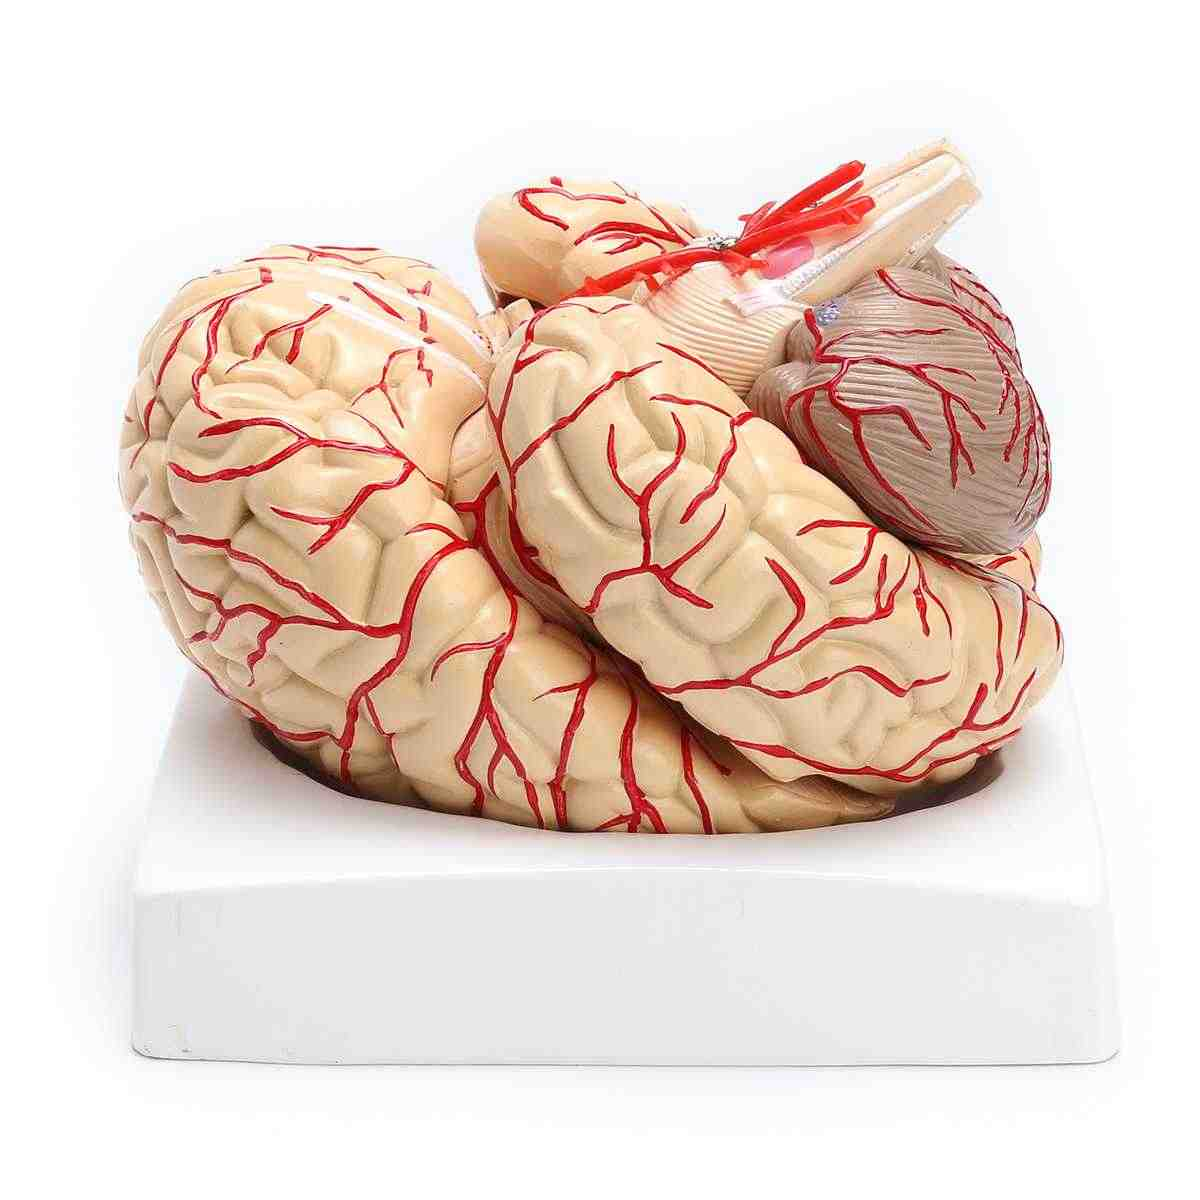 OUBO Life Size 1:1 Human Brain with Arteries Model Anatomical Medical Organ Anatomy